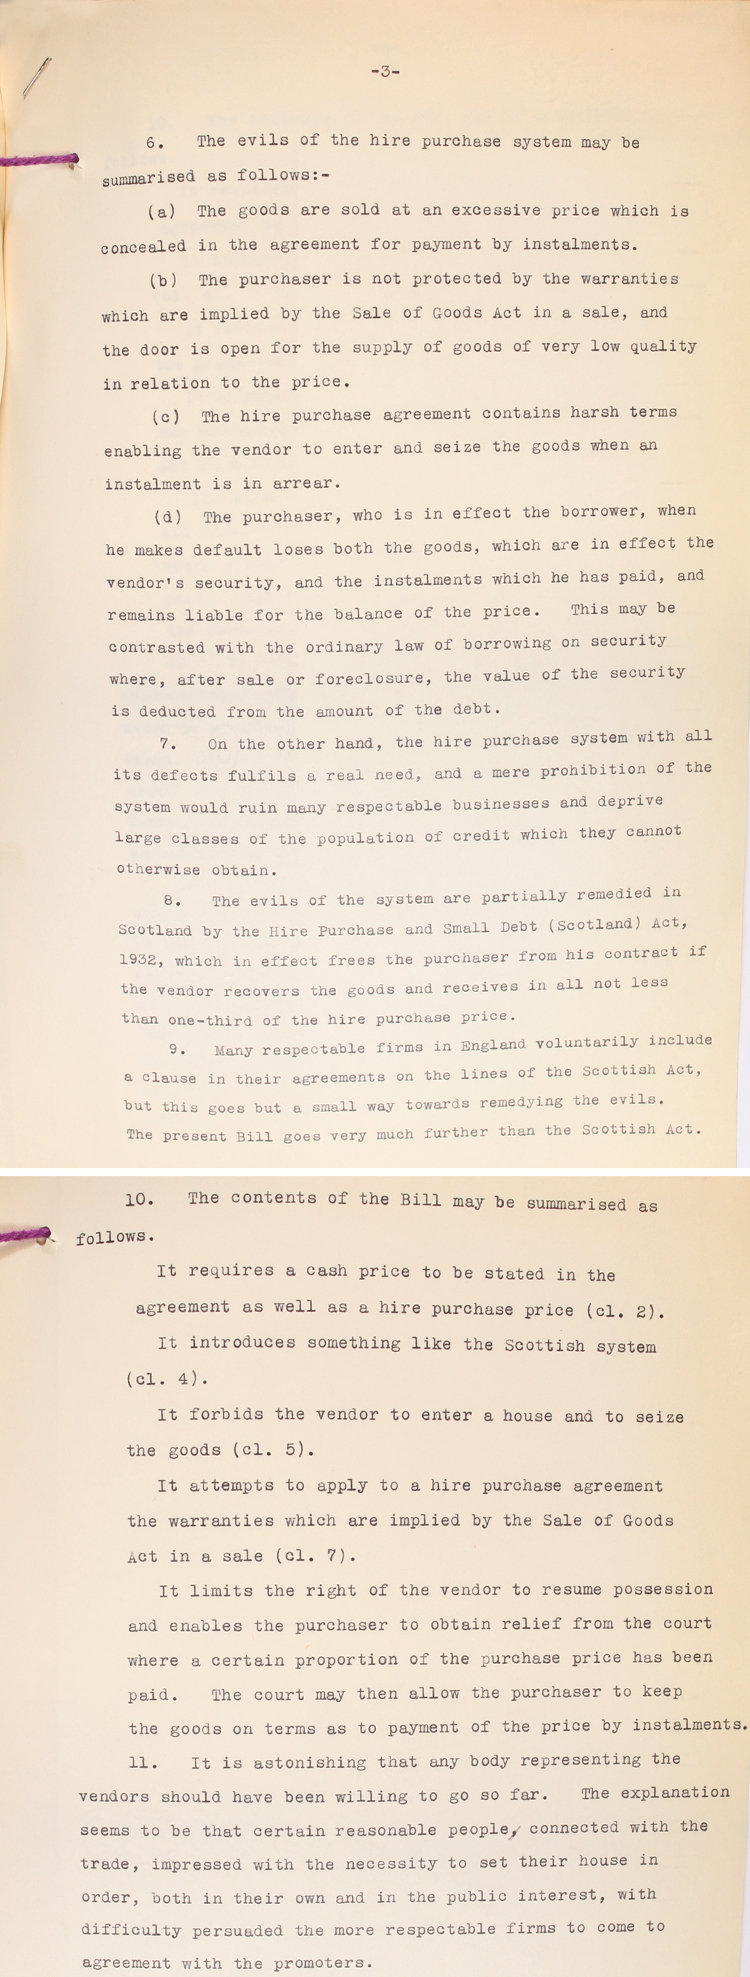 """Extracts from a report to the Lord Chancellor summarising the """"evils"""" of the hire purchase system and Labour MP Ellen Wilkinson's Bill to change the law on hire purchase, 3rd December 1937 (LCO 2/1511)"""